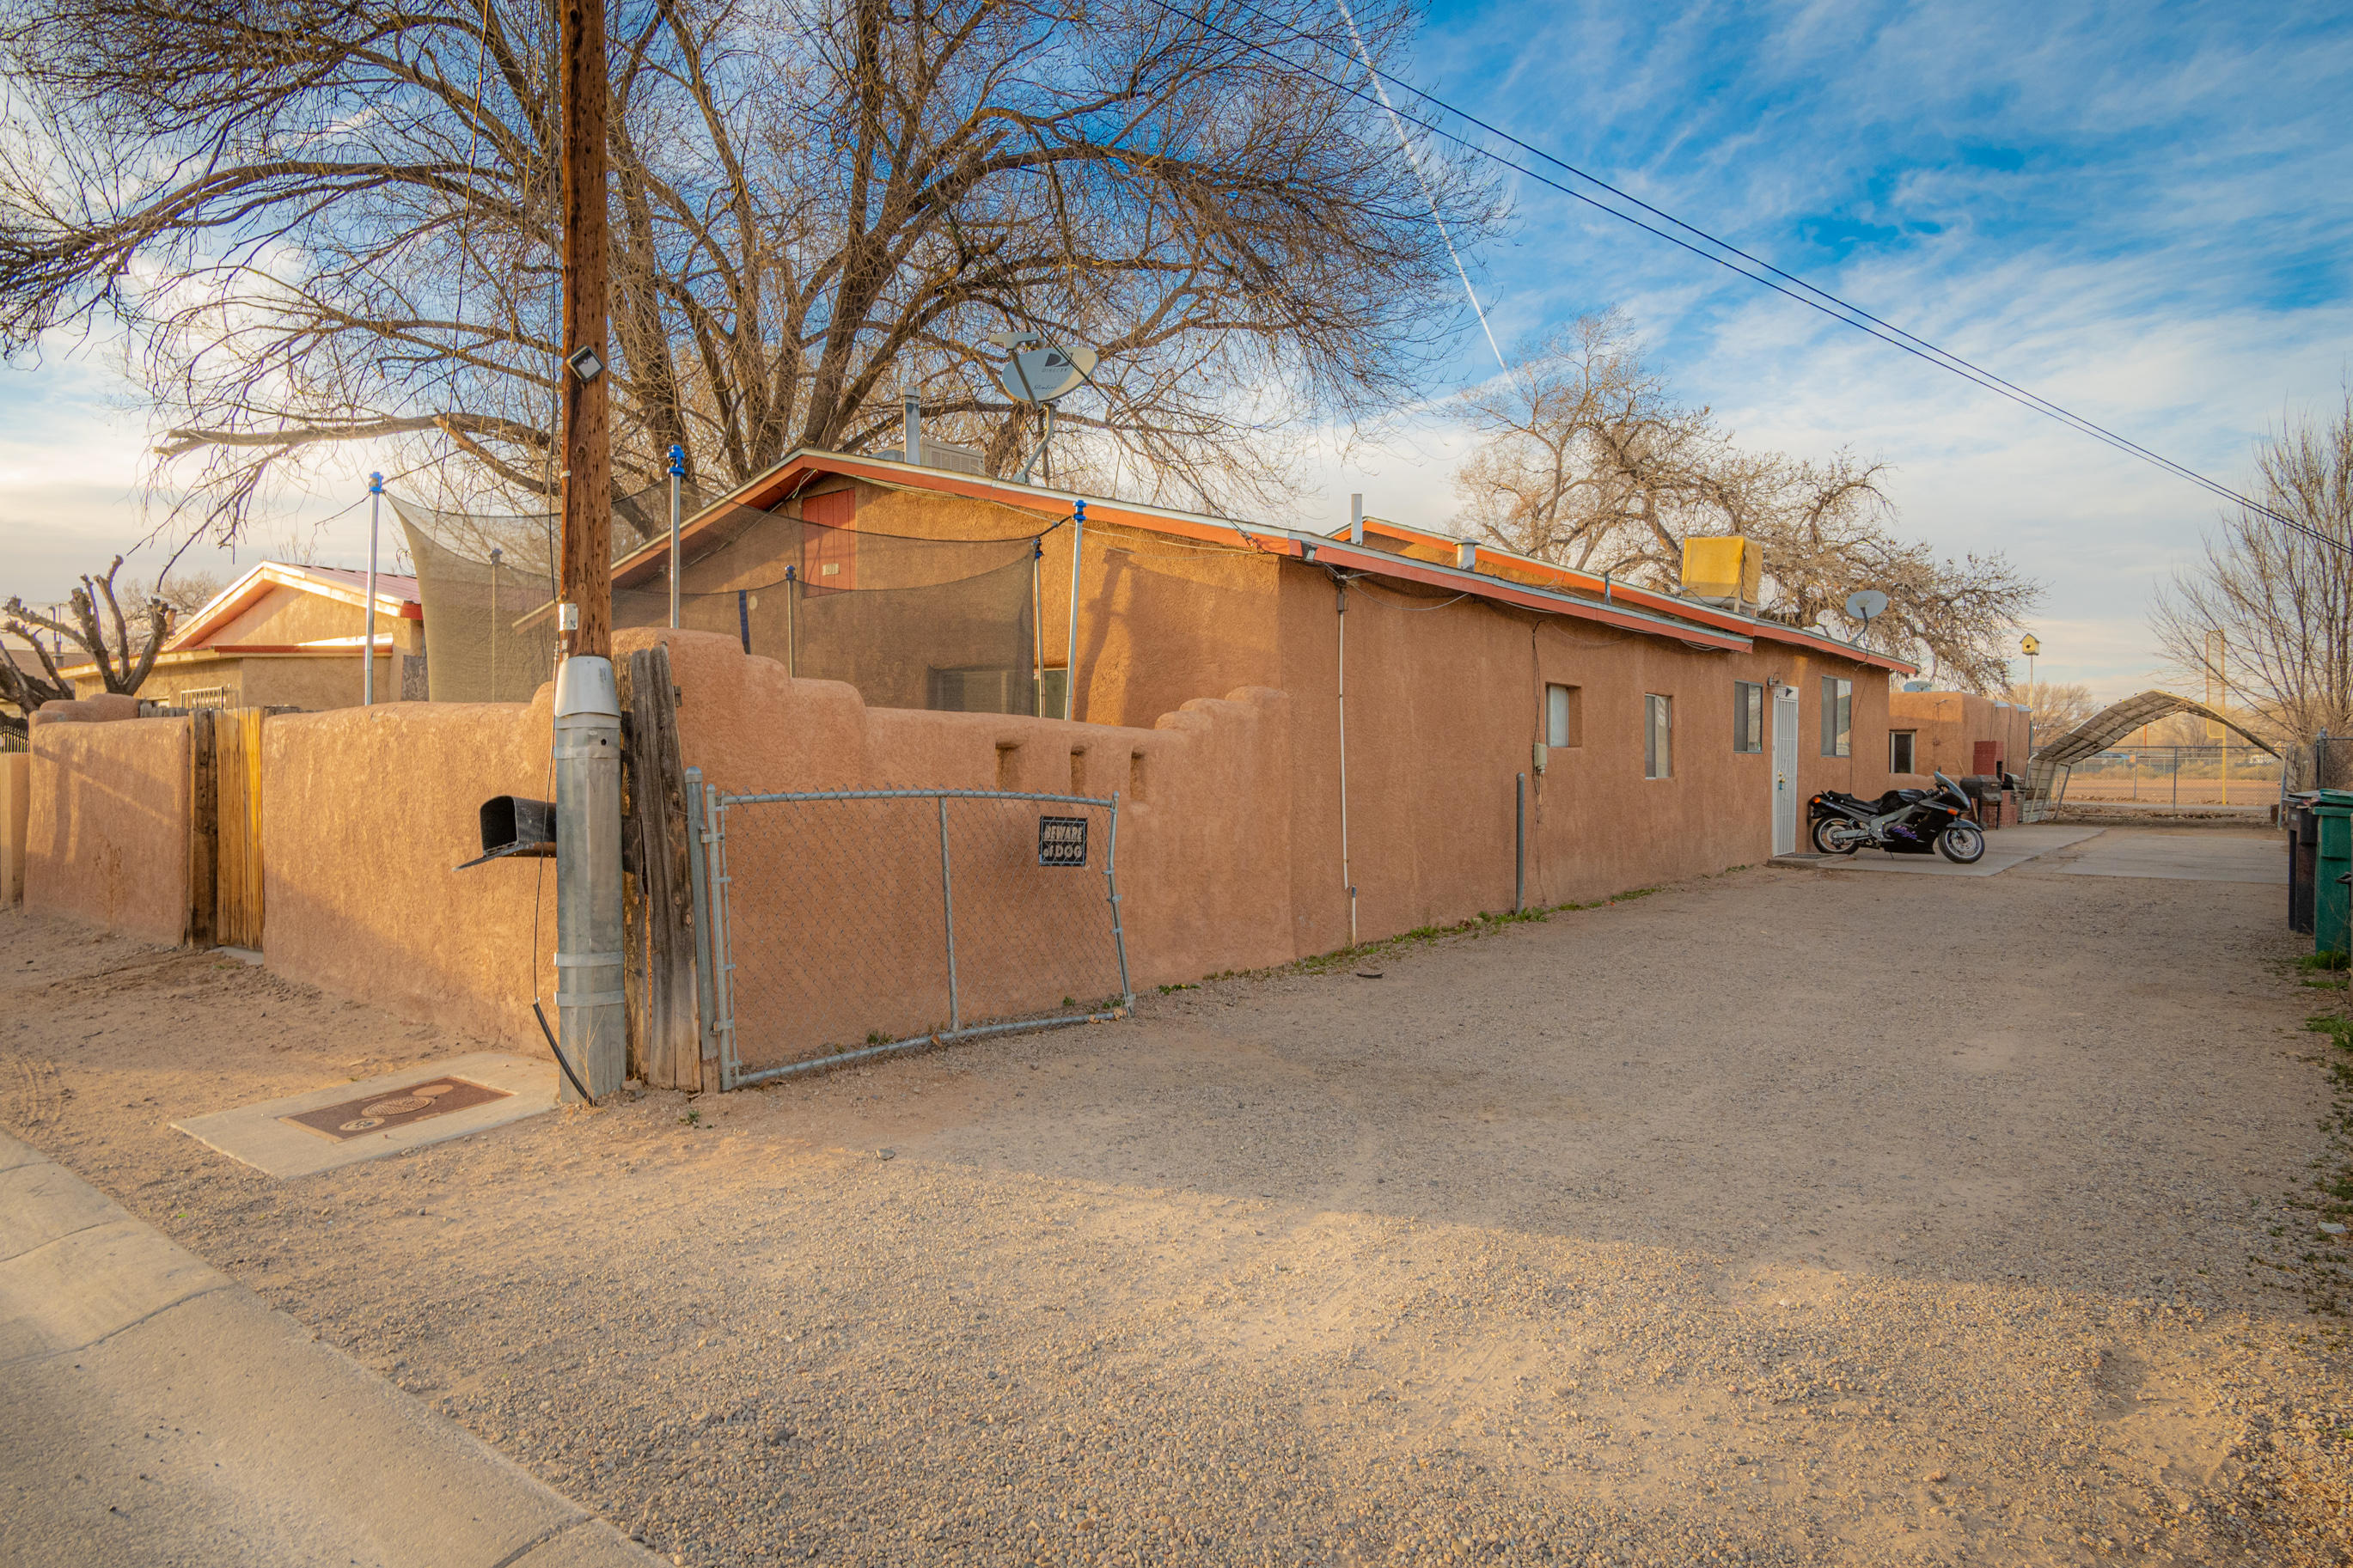 South Valley property with 2 Houses! Income generating property! Both houses are currently rented and separately metered. Please do not disturb tenants. 24hour notice for showings.